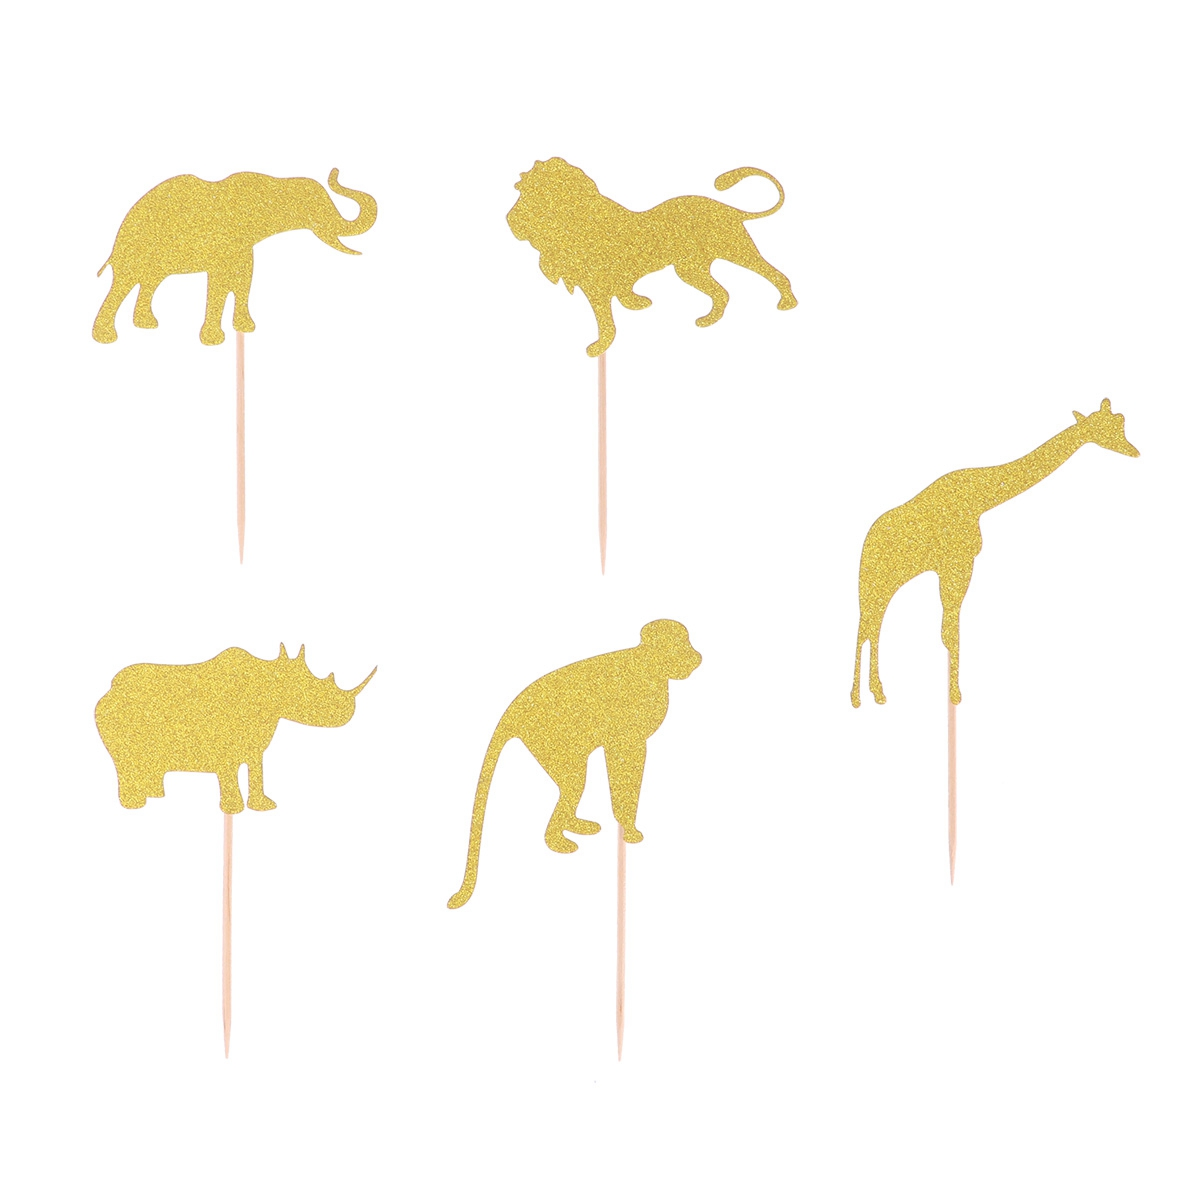 Image 4 - 10pcs Cake Topper Glitter Jungle Animals Golden Cupcake Toppers Dessert Topper Insert Card Fruit Topper For Birthday-in Cake Decorating Supplies from Home & Garden